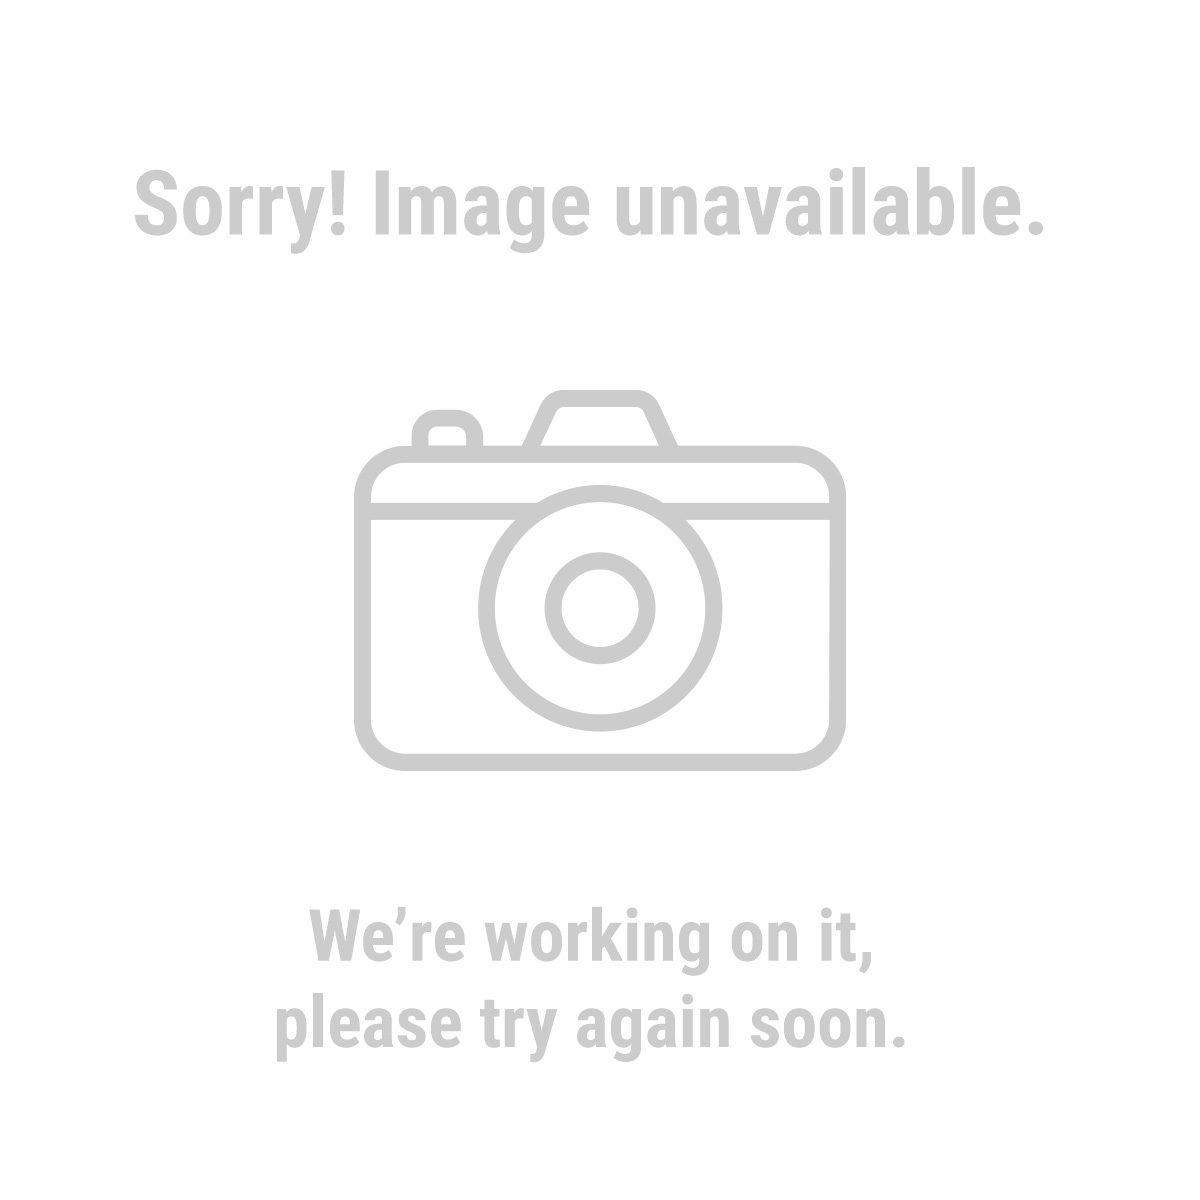 Central Pneumatic 61977 3/8 in. x 25 ft. PVC Air Hose